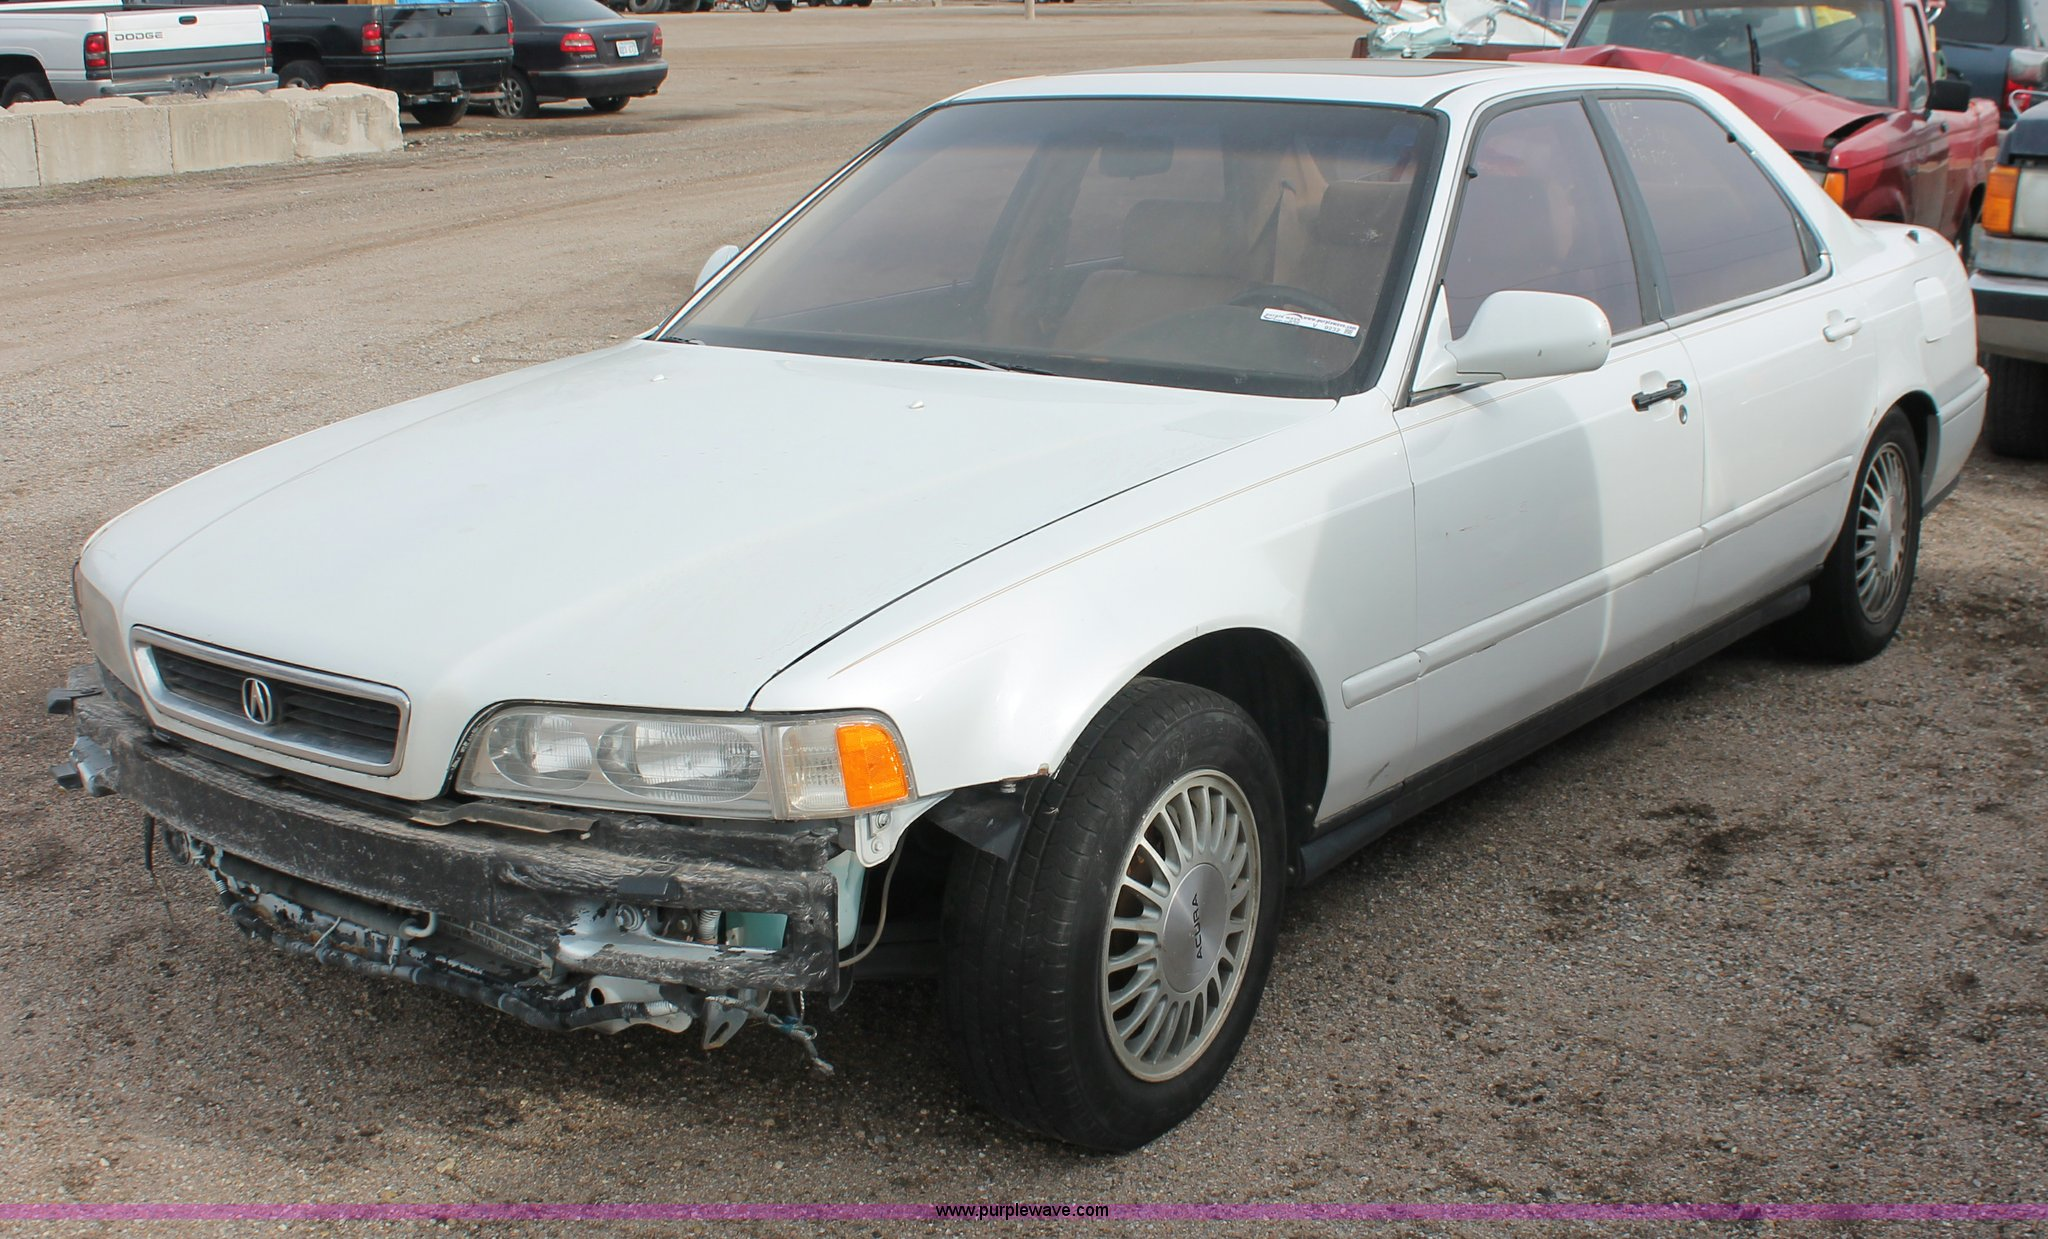 Acura Legend LS Item V SOLD Monday February - Acura legend 1992 for sale